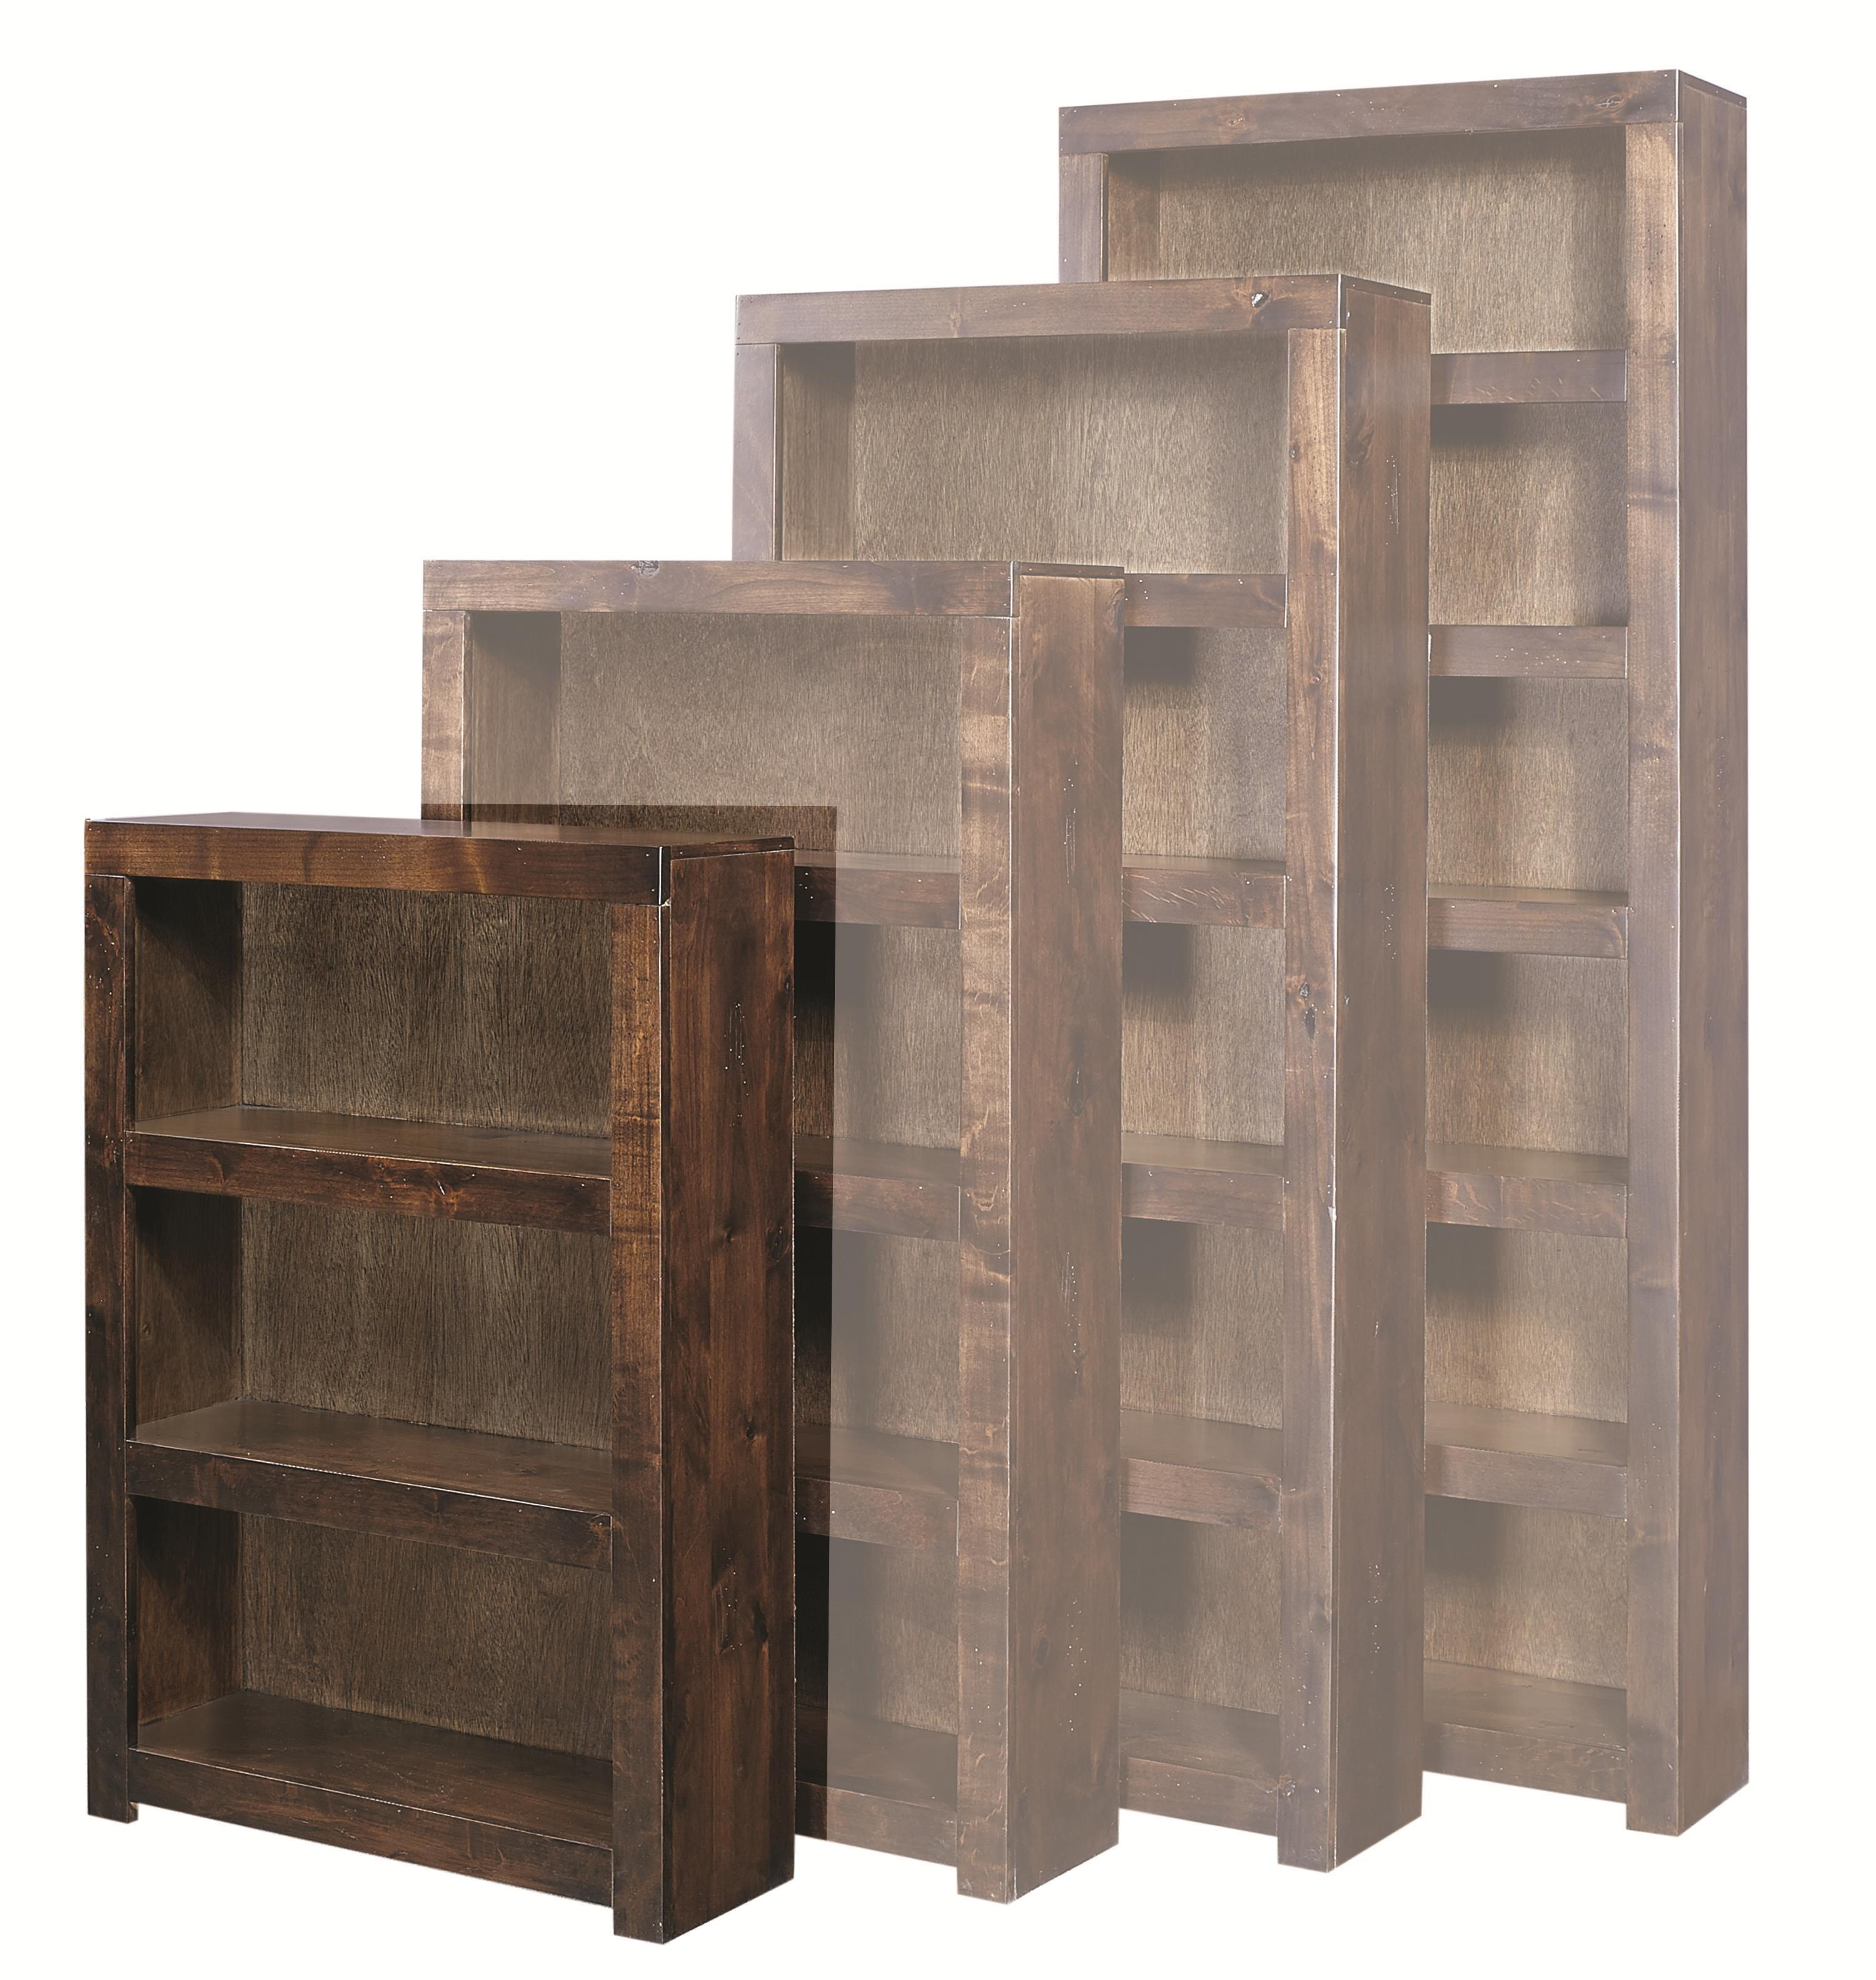 Aspenhome Contemporary Alder 48 Inch Bookcase - Item Number: DL3448-TOB